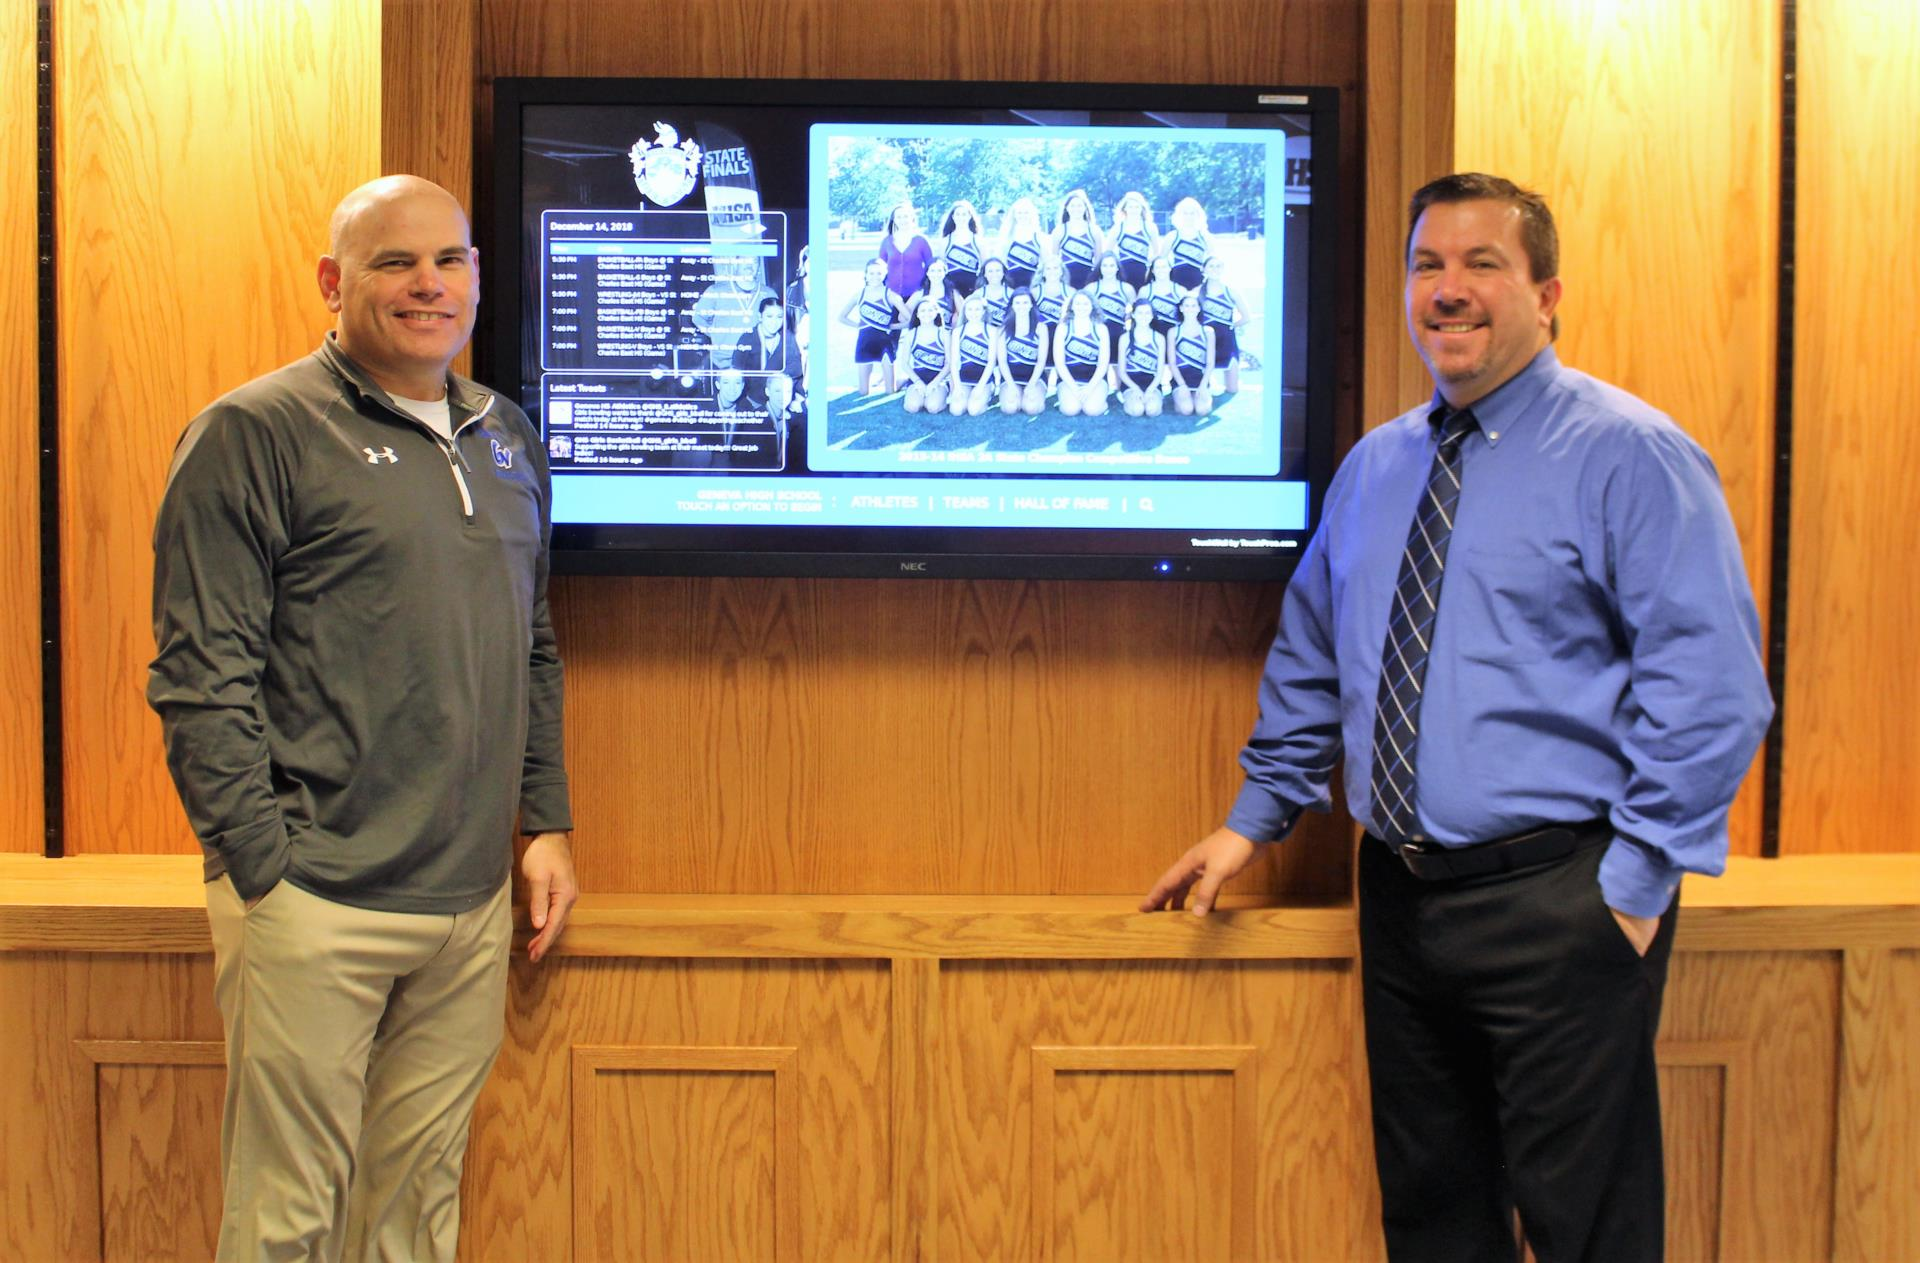 Athletic Director Dave Carli (right) and Assistant Athletic Director Matt Hahn unveil the interactive, touchscreen monitor in the GHS Contest Gym Foyer.